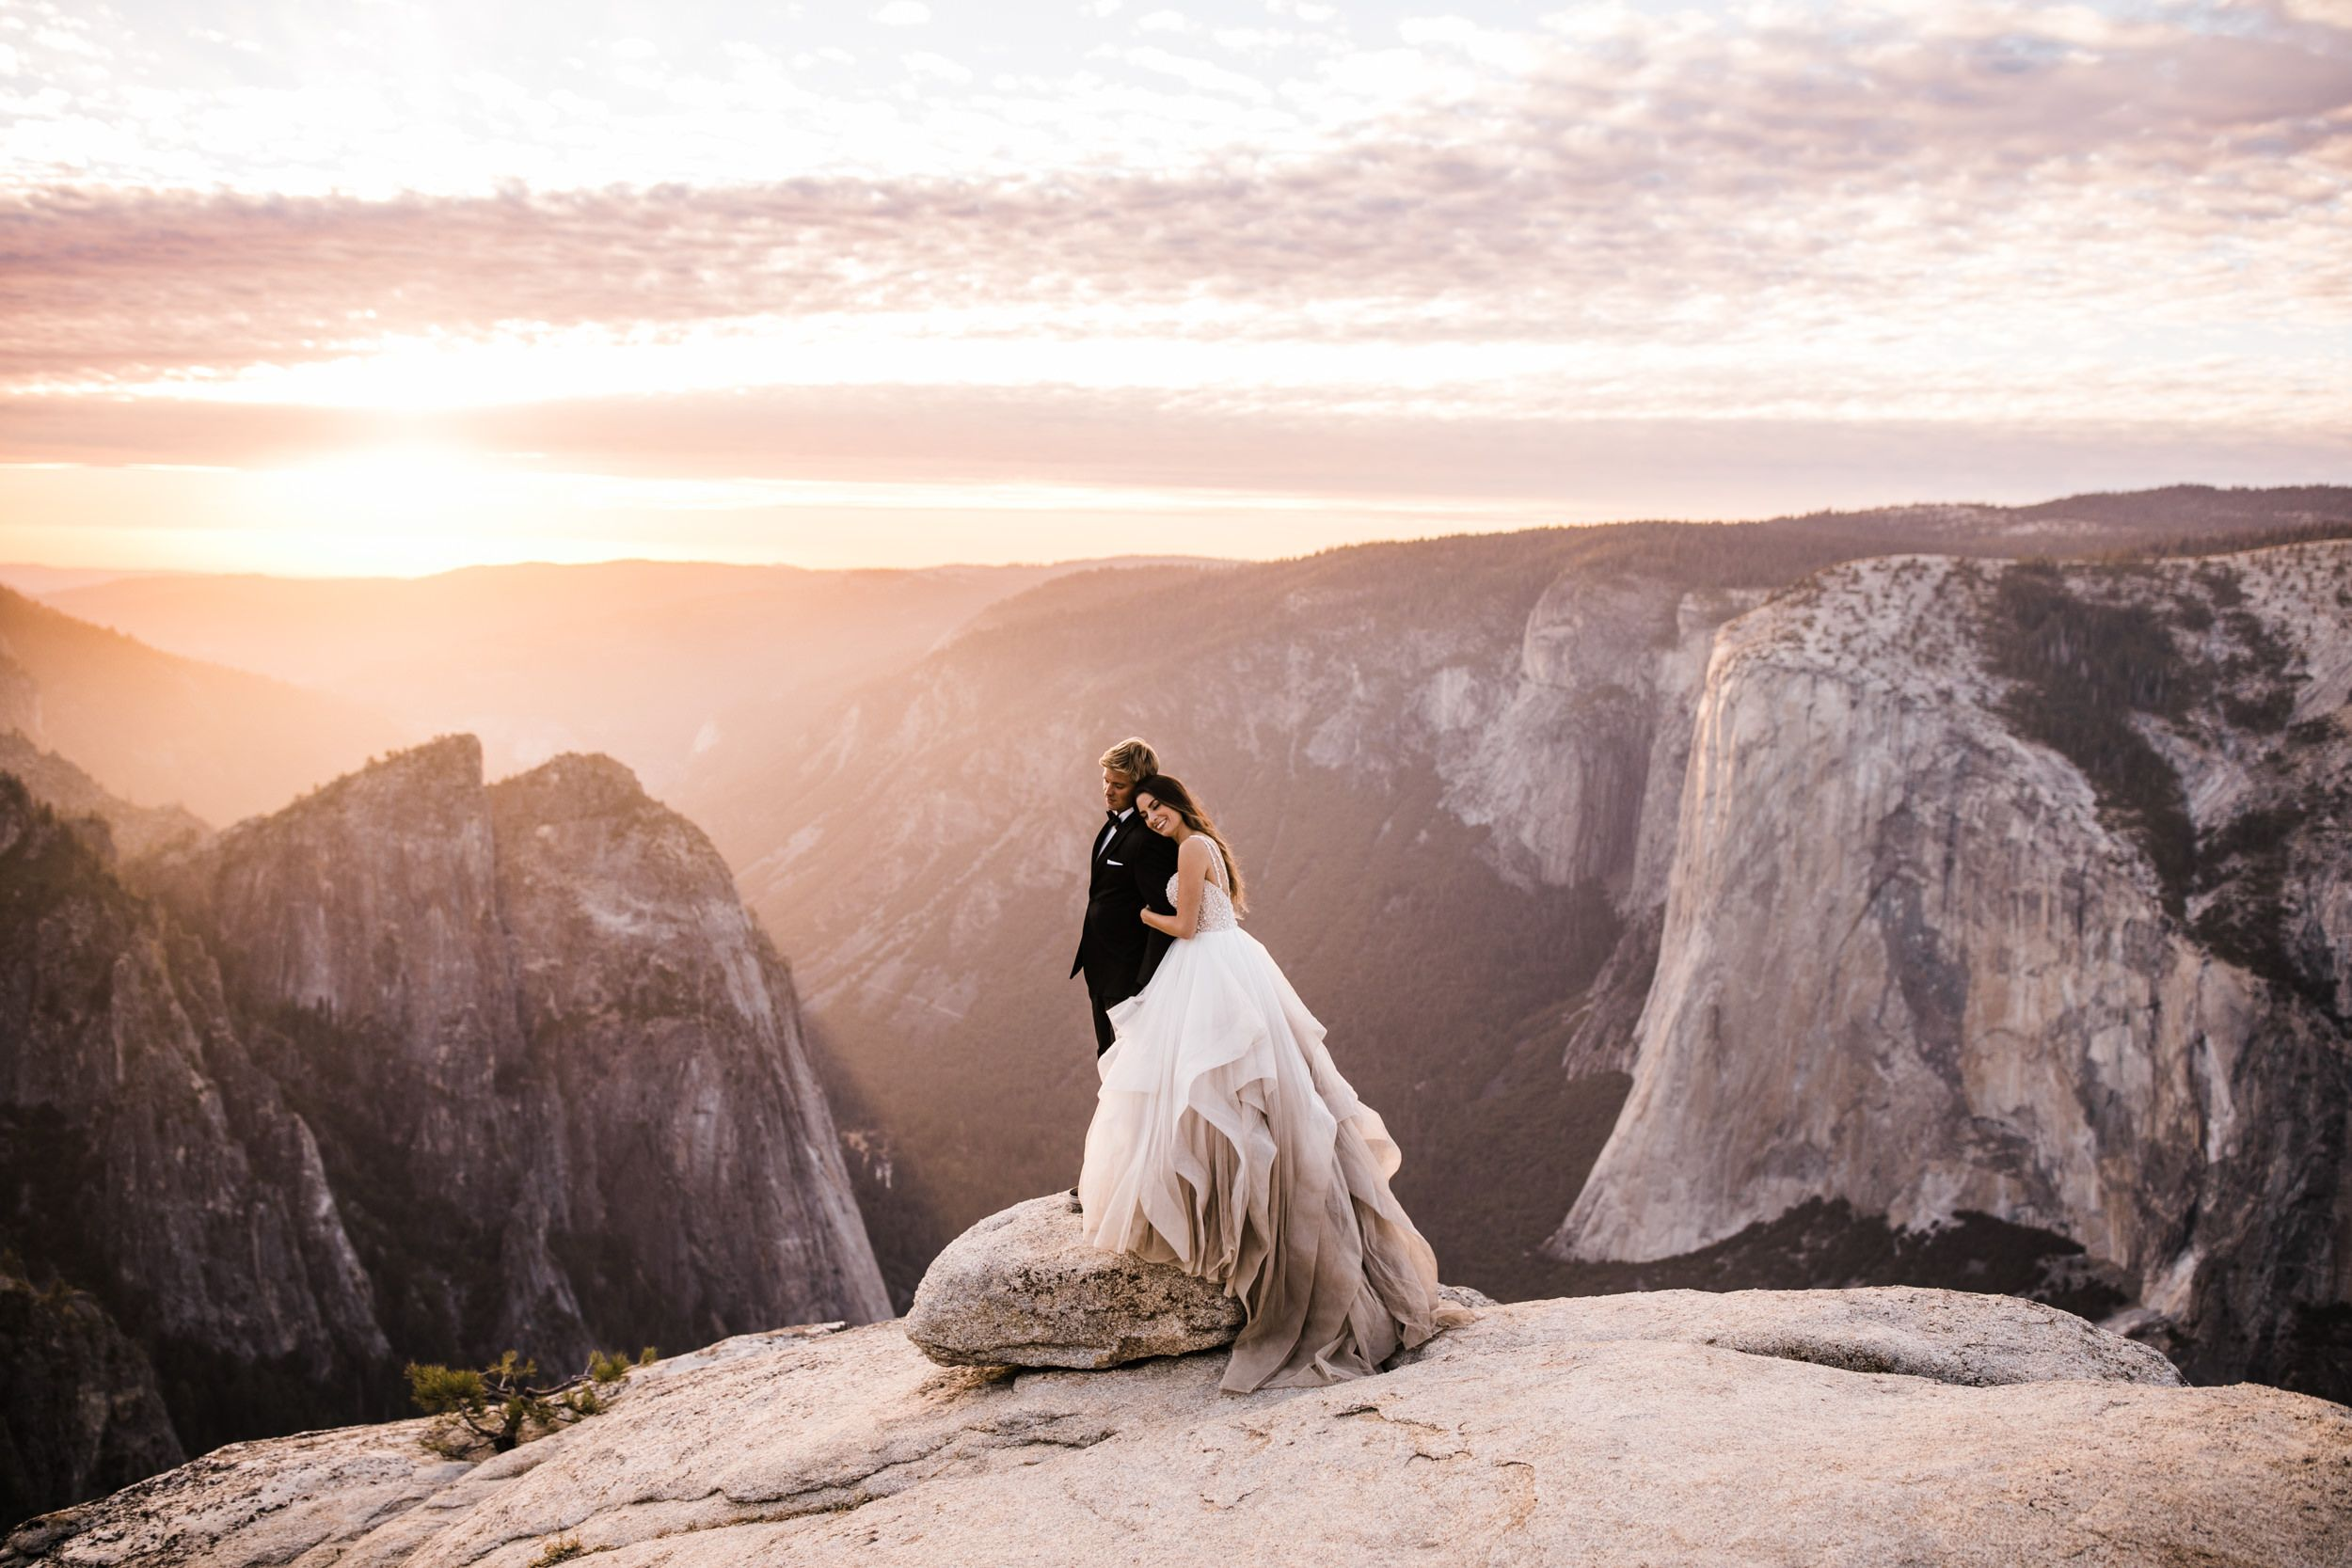 Yosemite National Park Intimate Wedding At Glacier Point Hike To Taft Point Adventure Elopement Photographer Adventure Wedding Elopement Photographers I Adventure Wedding Yosemite Wedding Adventure Elopement